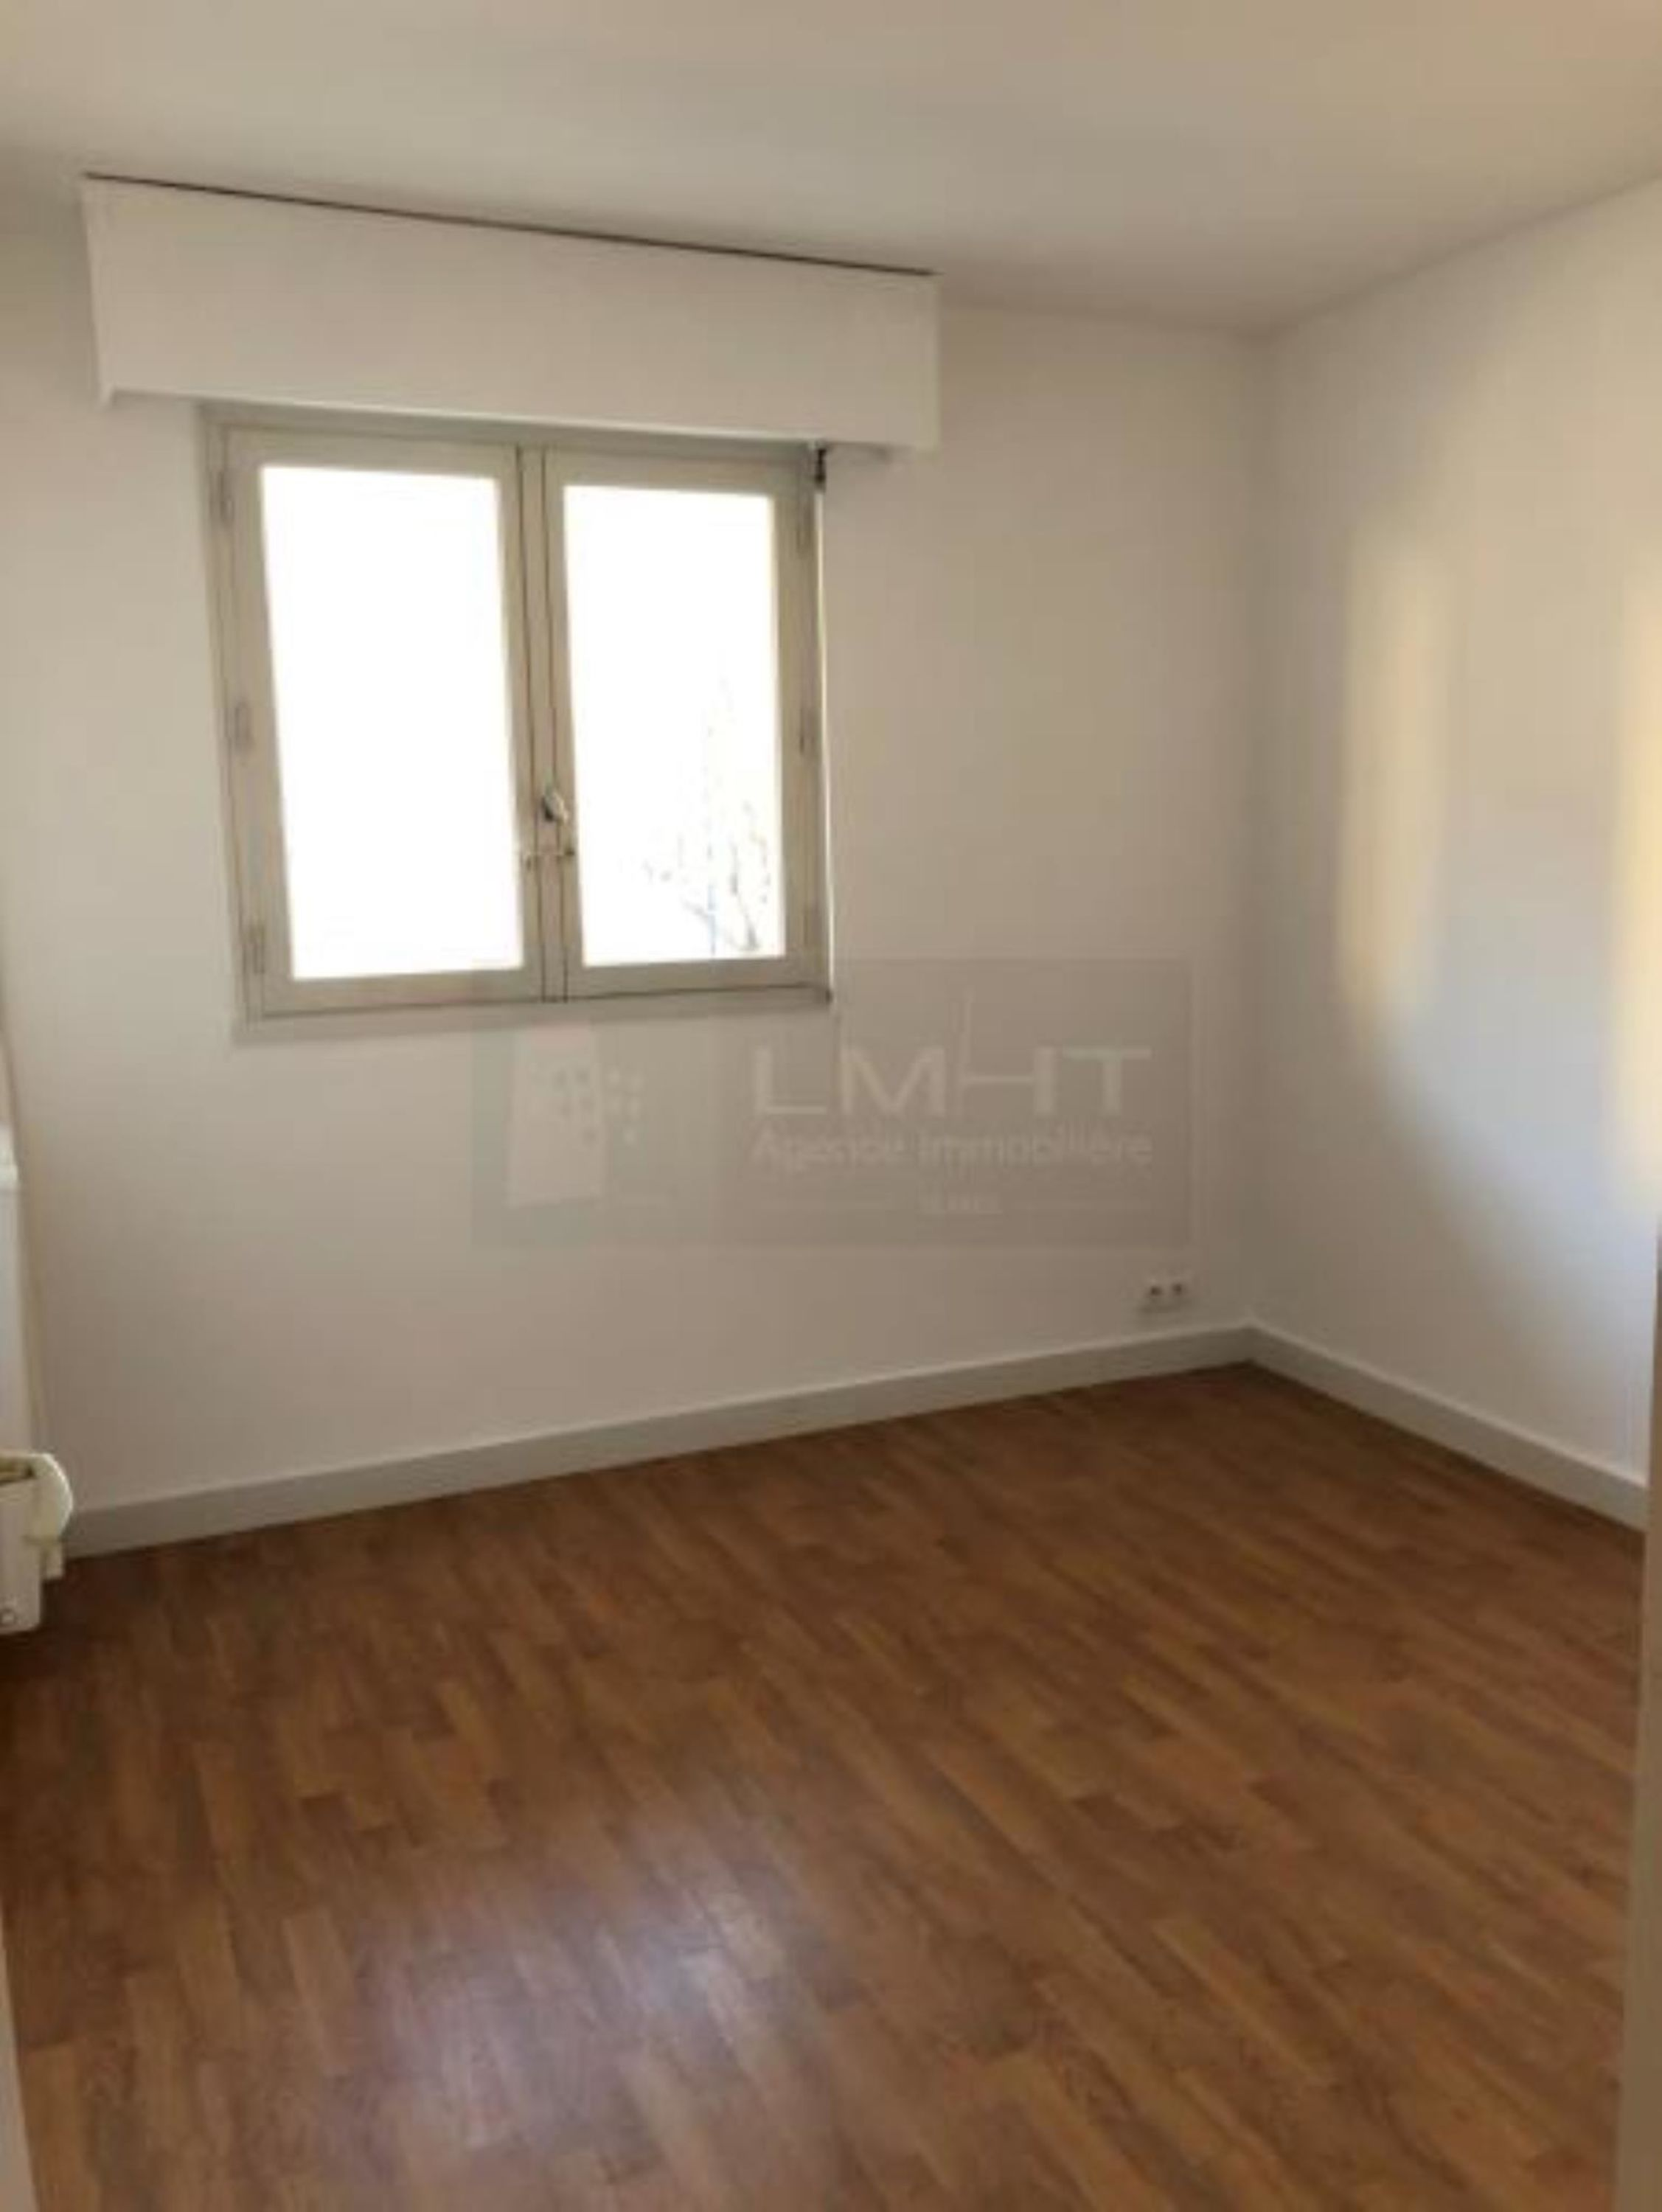 agence immobilière sevres 92 le chesnay 78 achat vente location appartement maison immobilier LMHT ANF BGPAUGFE